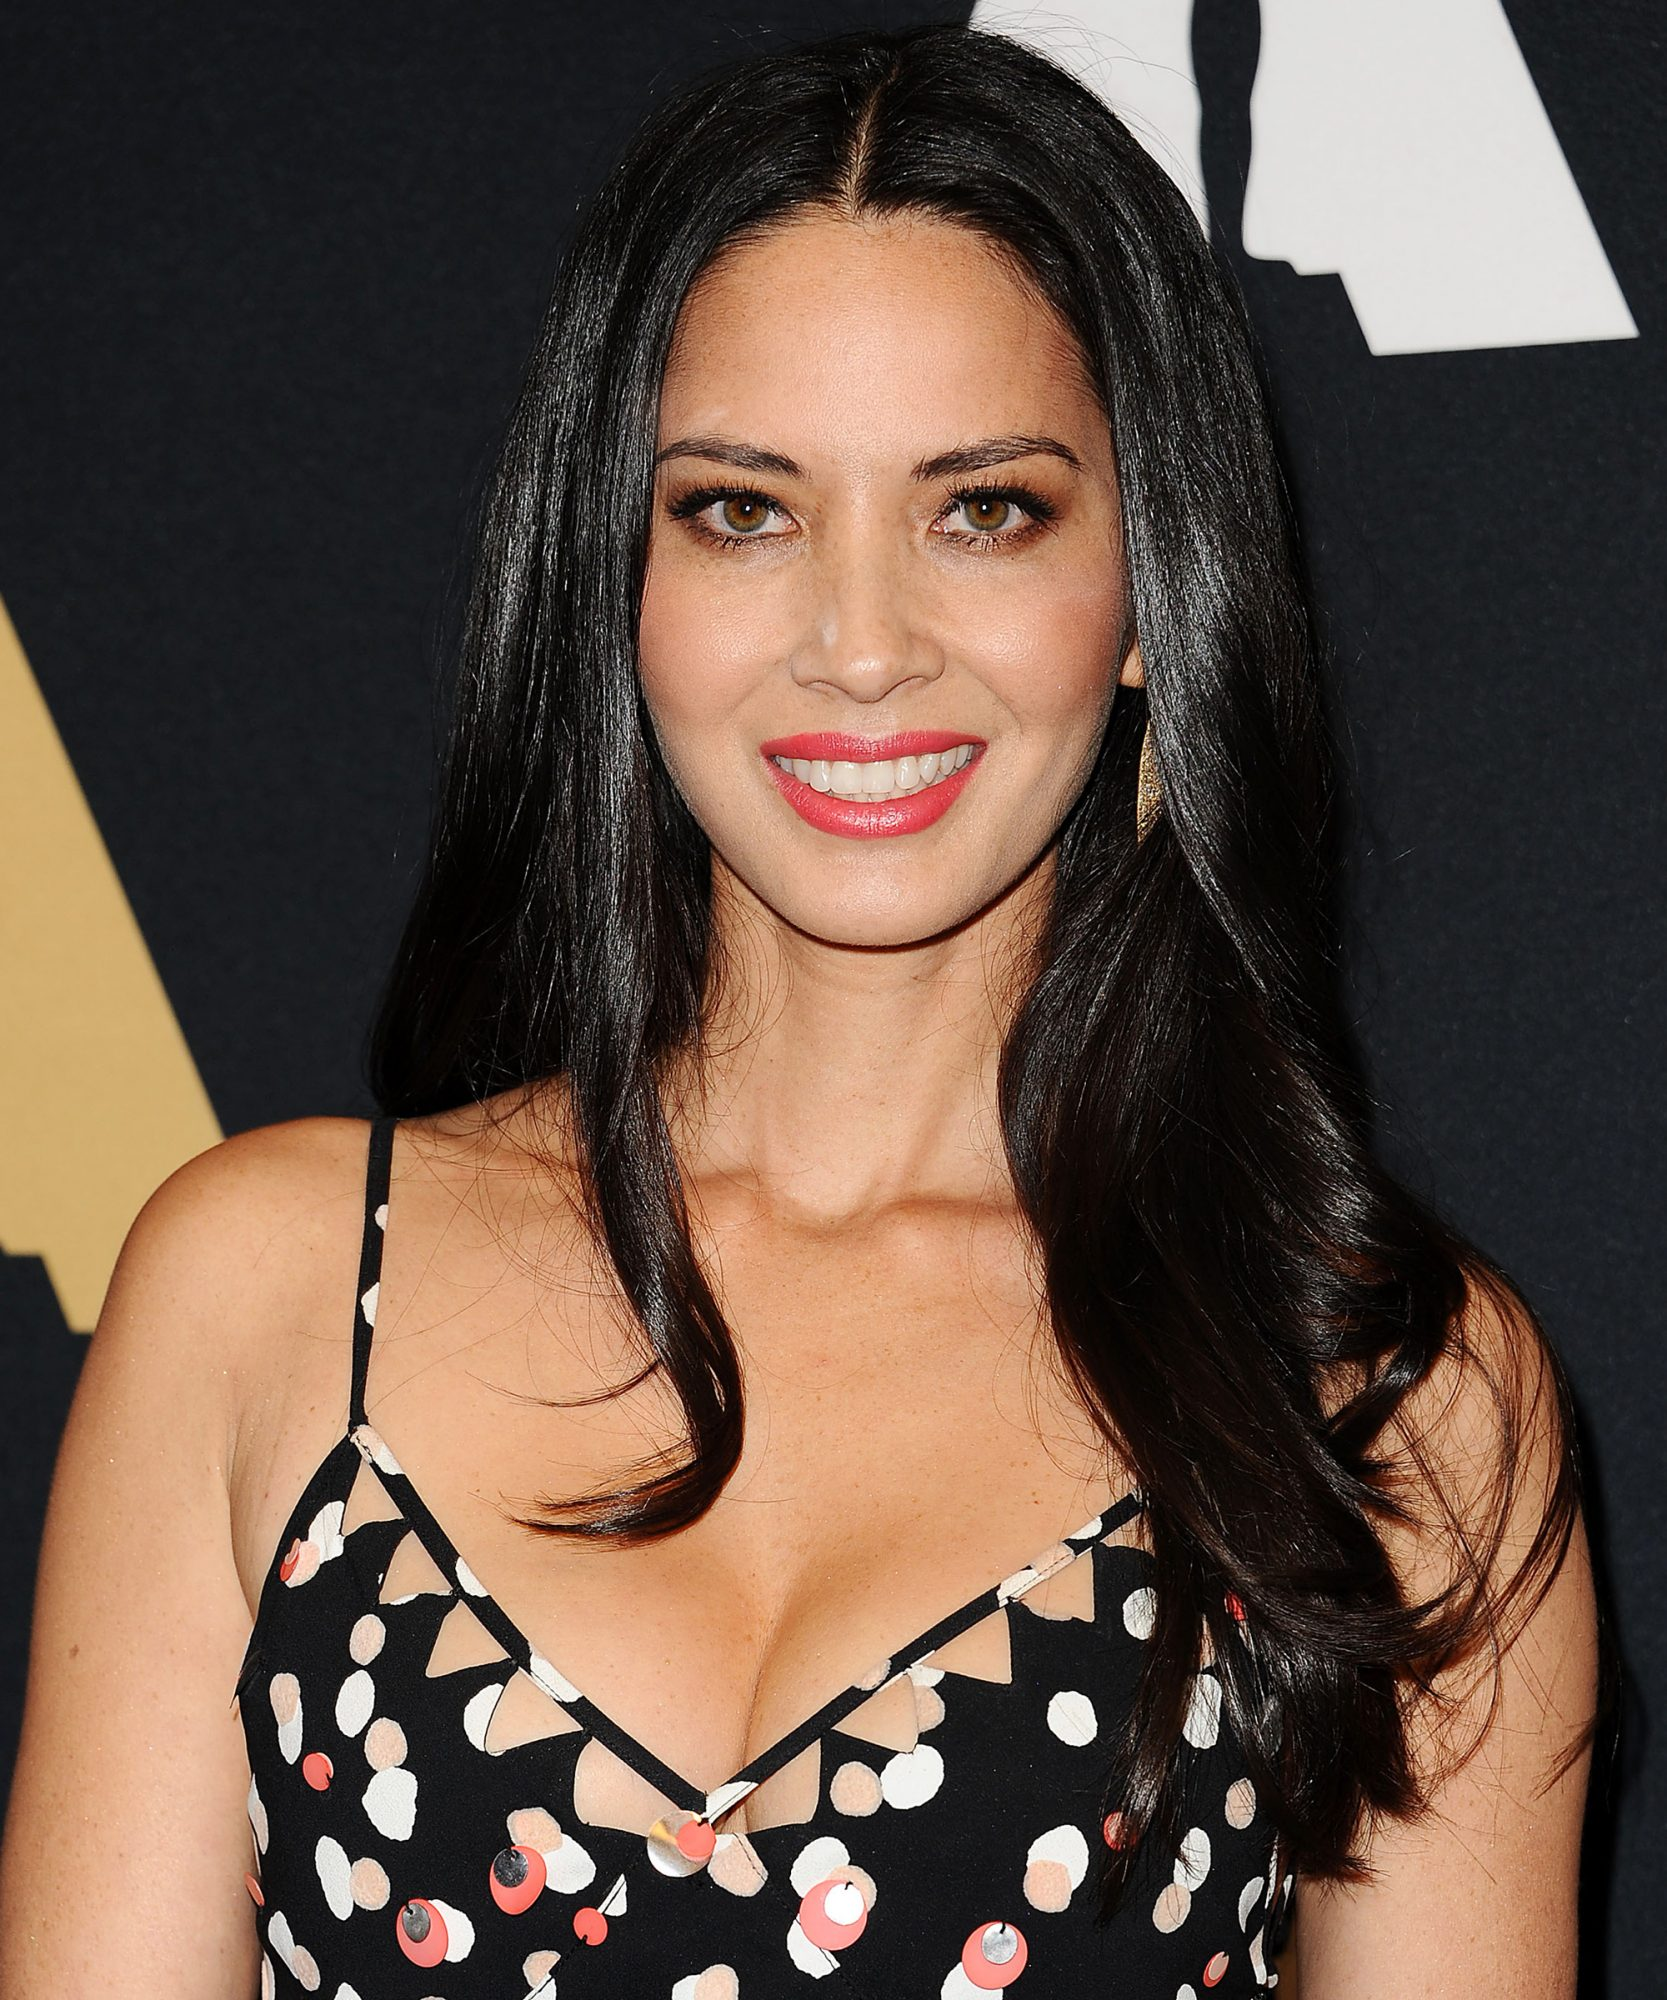 Olivia Munn's Secret to Great Cleavage Is Way More Comfortable Than Kim Kardashian West's Suggestion